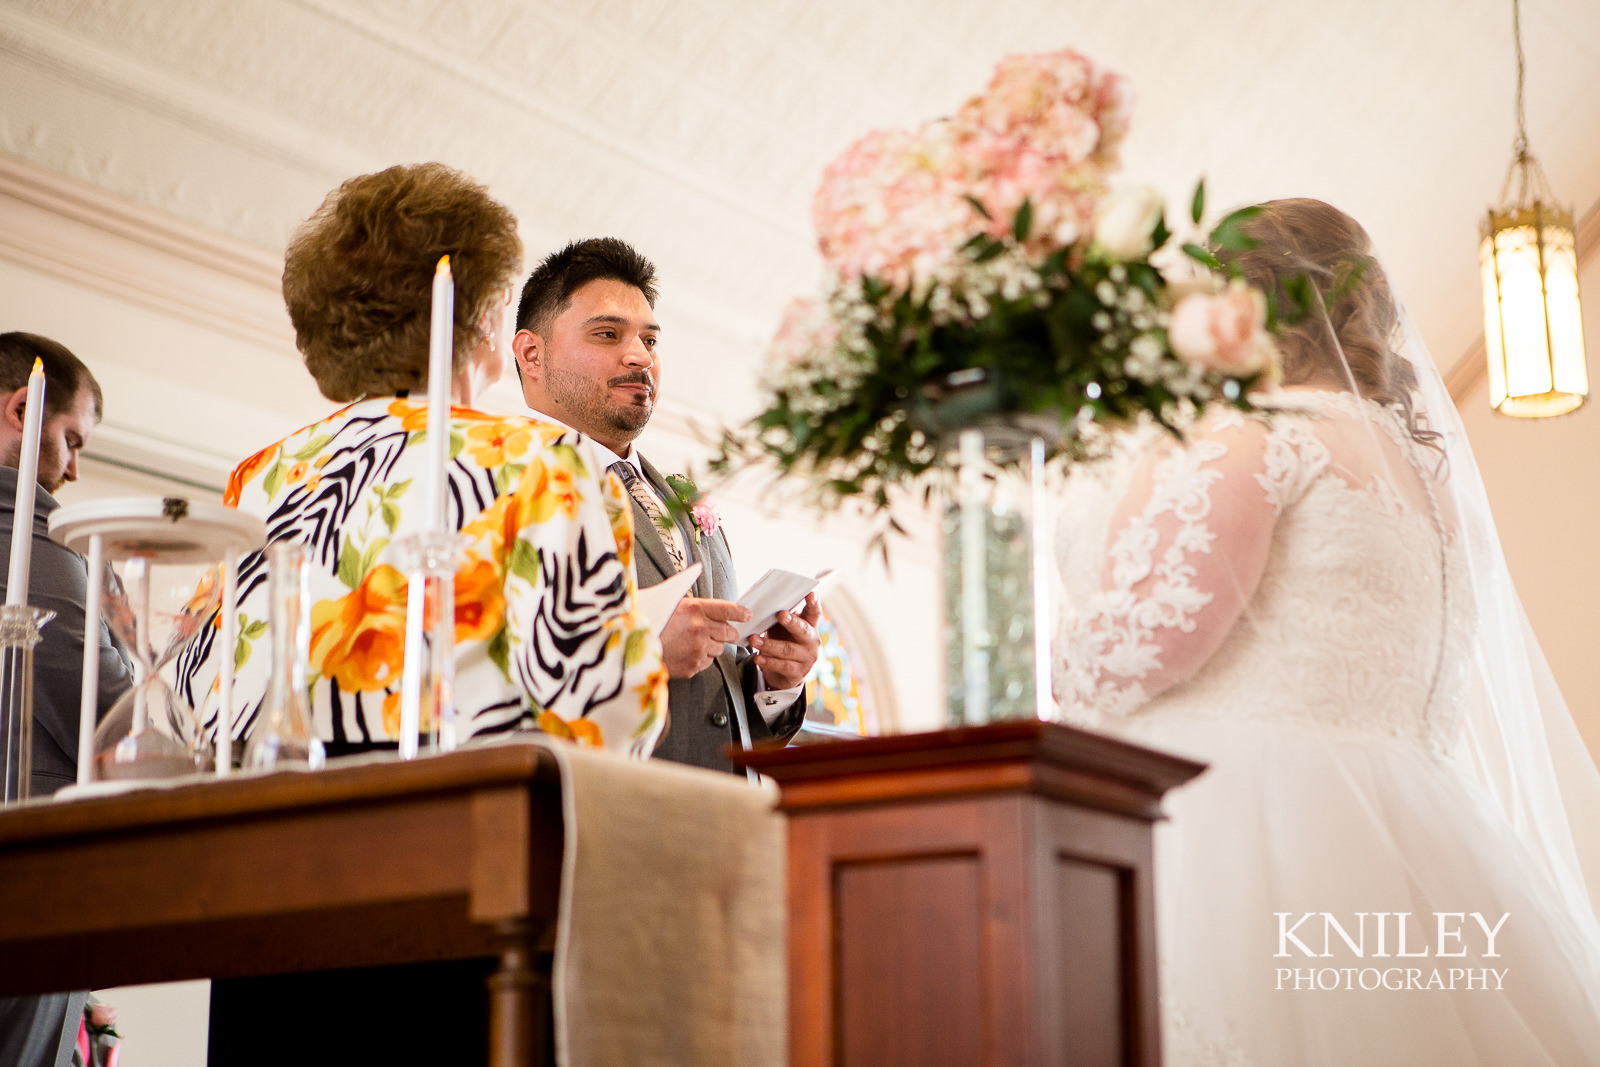 039 - Westminster Chapel - Rochester NY wedding photo - Kniley Photography.jpg